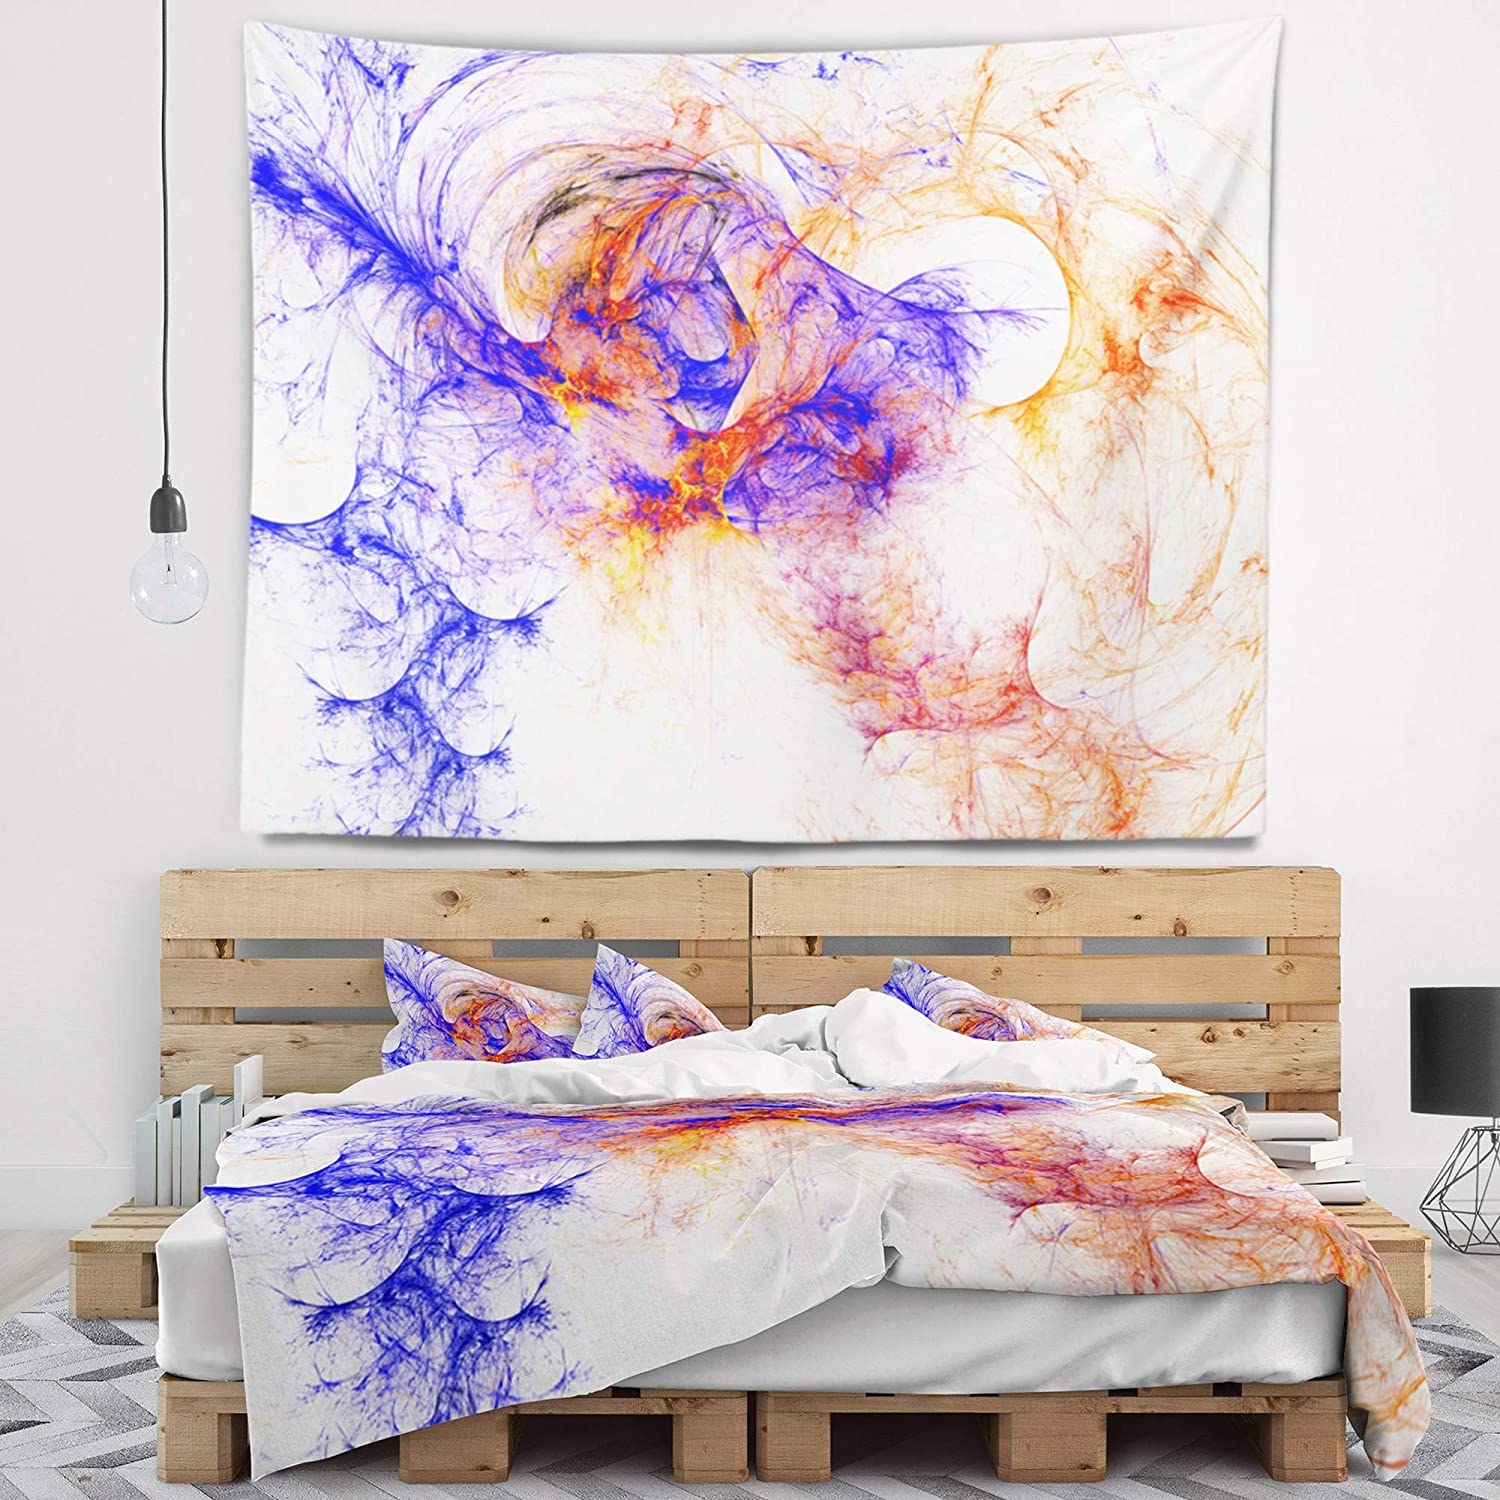 Designart TAP8025-39-32  Wings of Angels Blue Abstract Blanket D/écor Art for Home and Office Wall Tapestry Medium Created On Lightweight Polyester Fabric 39 in x 32 in